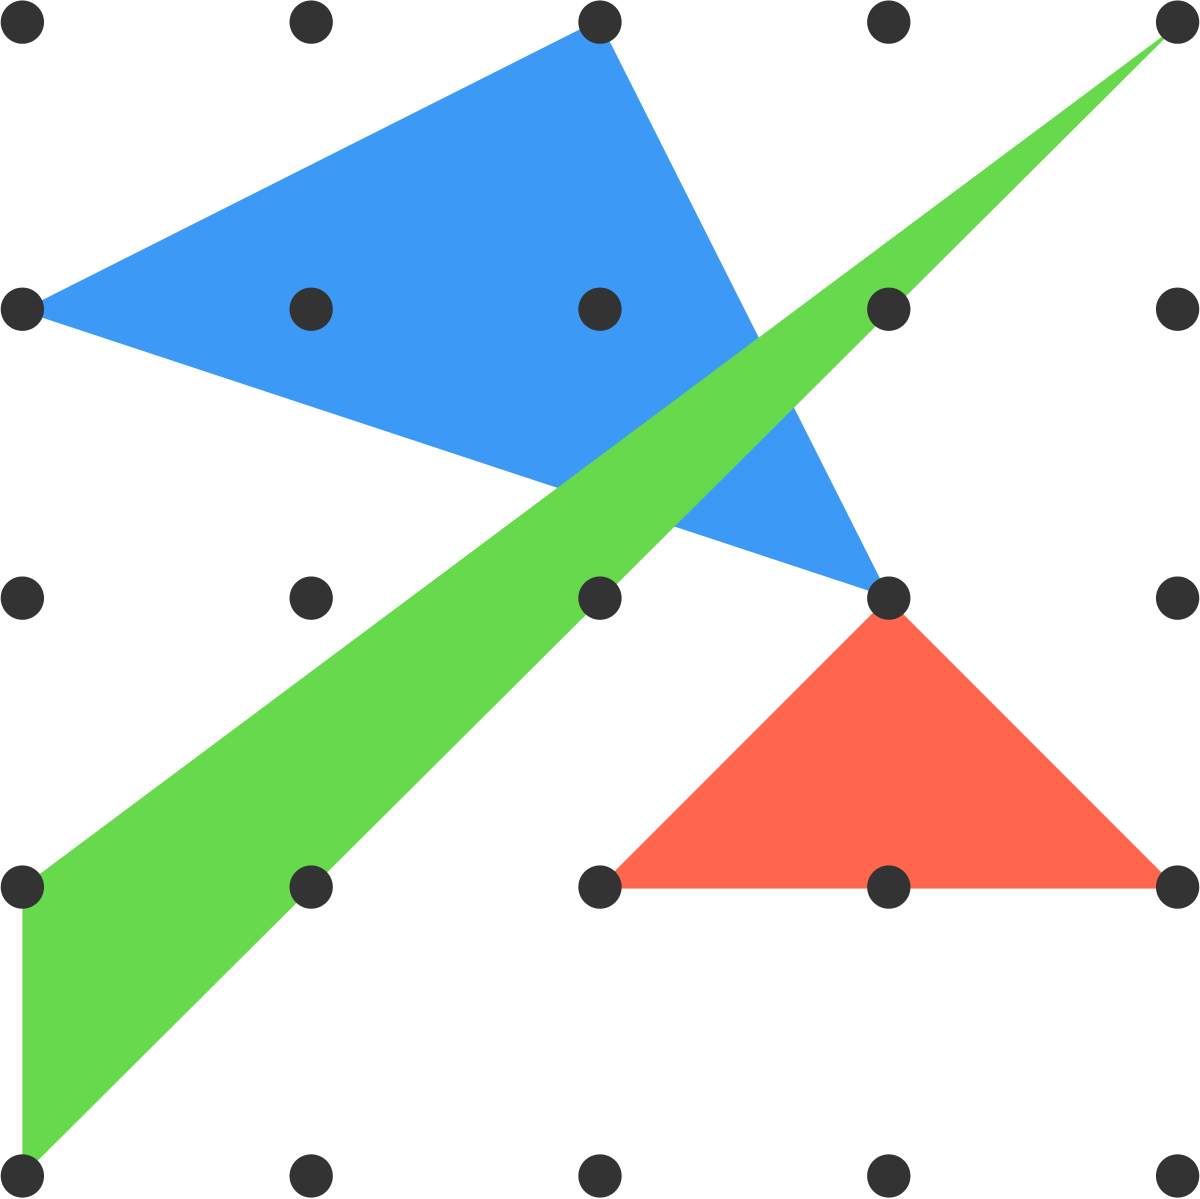 Three possible triangles are shown.